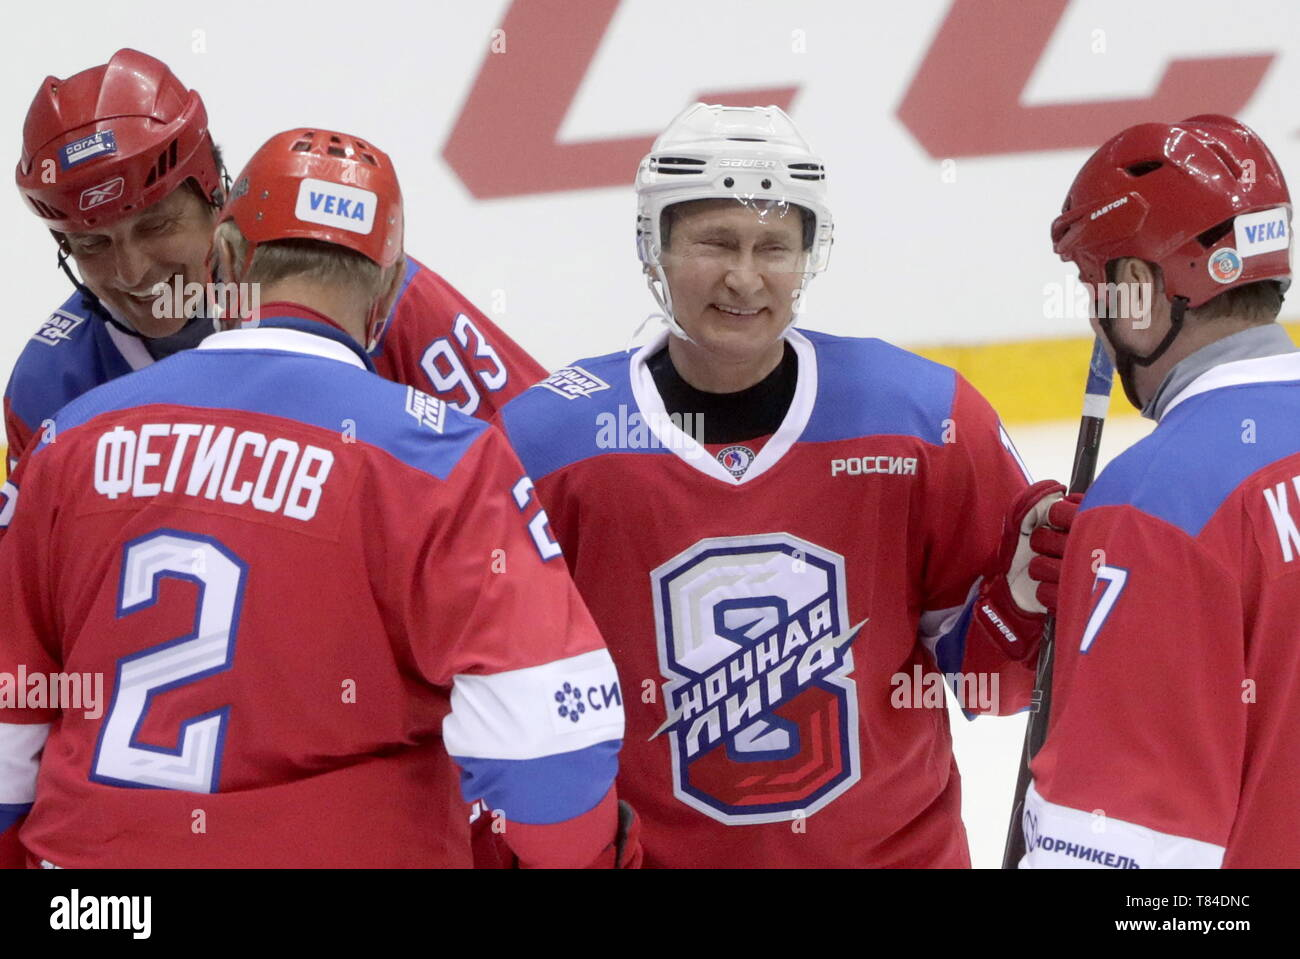 Sochi, Russia. 10th May, 2019. SOCHI, RUSSIA - MAY 10, 2019: Tula Region Governor Alexei Dyumin, Russian State Duma member Vyacheslav Fetisov, Russia's President Vladimir Putin, and Olympic ice hockey champion, NHL board member Alexei Kasatonov (L-R) in a Night Hockey League gala match at the Bolshoi Ice Palace. Mikhail Metzel/TASS Credit: ITAR-TASS News Agency/Alamy Live News - Stock Image